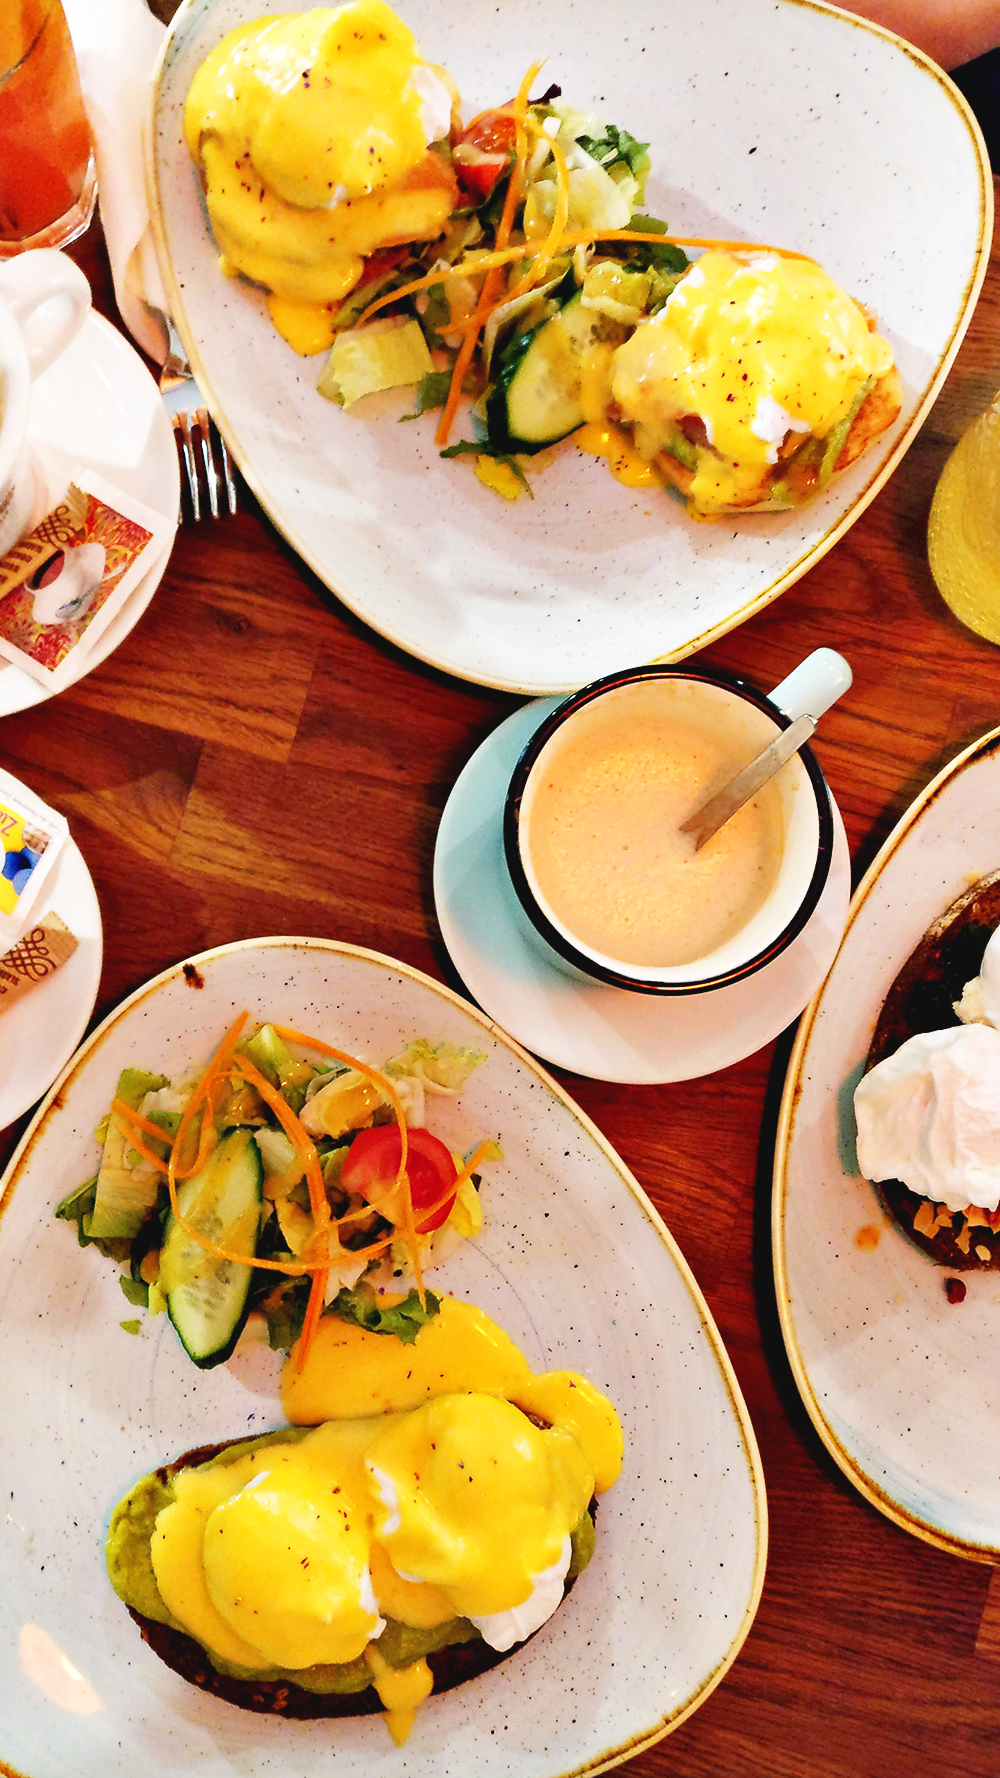 Poached eggs served with hollandaise sauce on rye bread with avocado cream in Kuglóf - Avocado toast lover's guide to Budapest, Hungary | Aliz's Wonderland #Budapest #Hungary #travel #avocadotoast #foodie #Budapestfoodguide